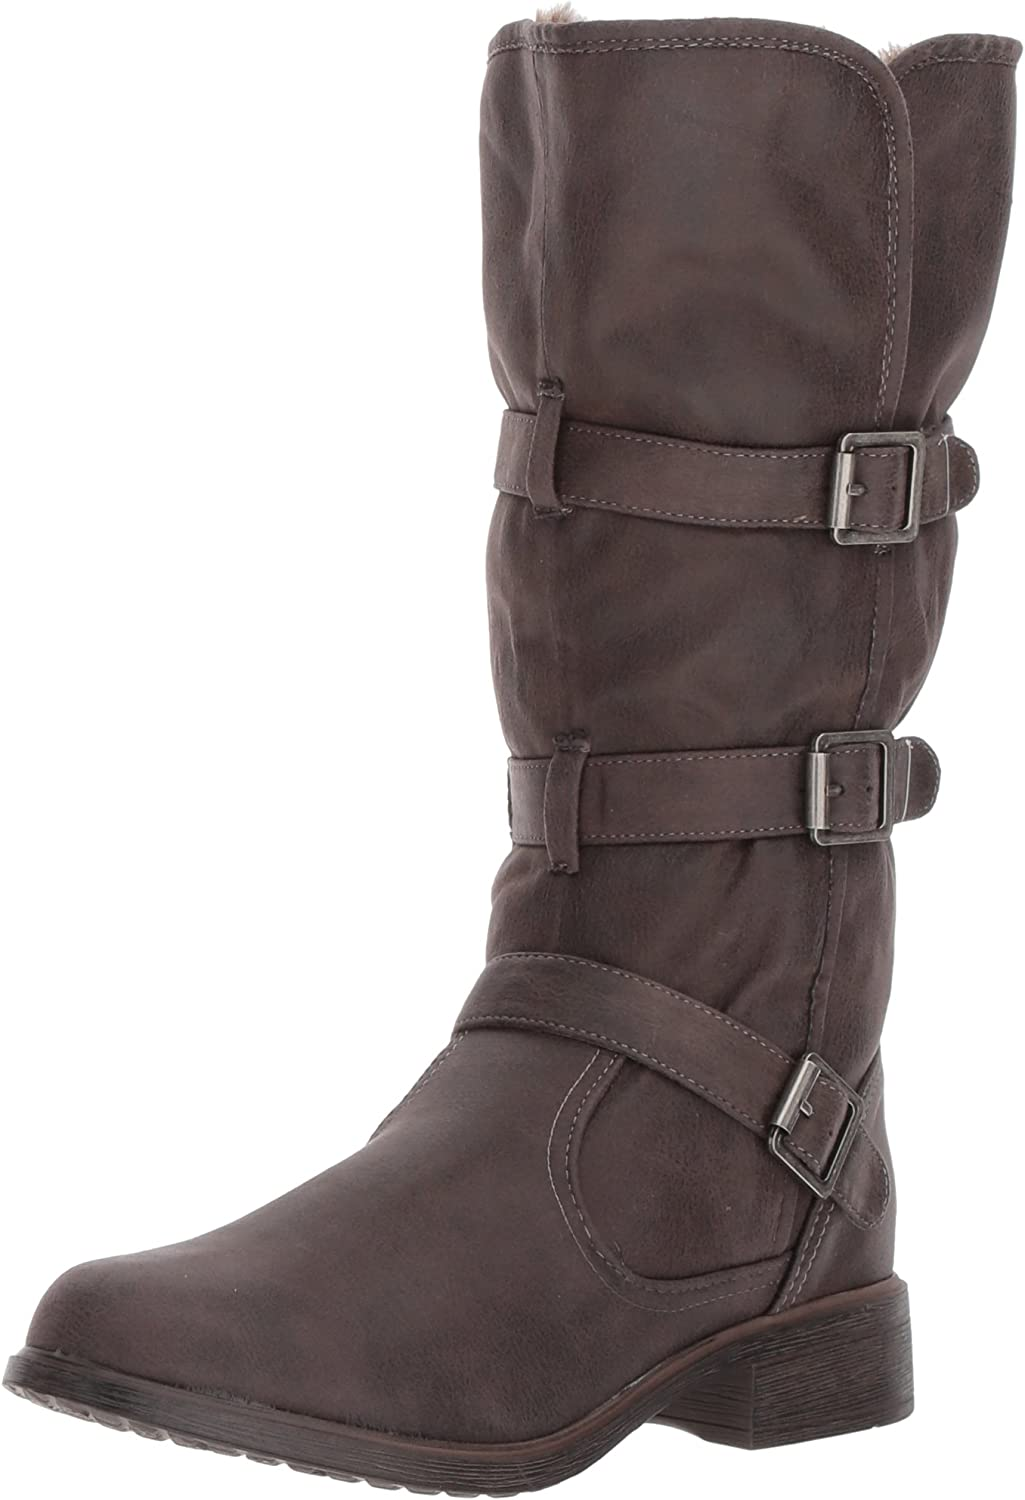 Report Womens Hedda Ankle Boot